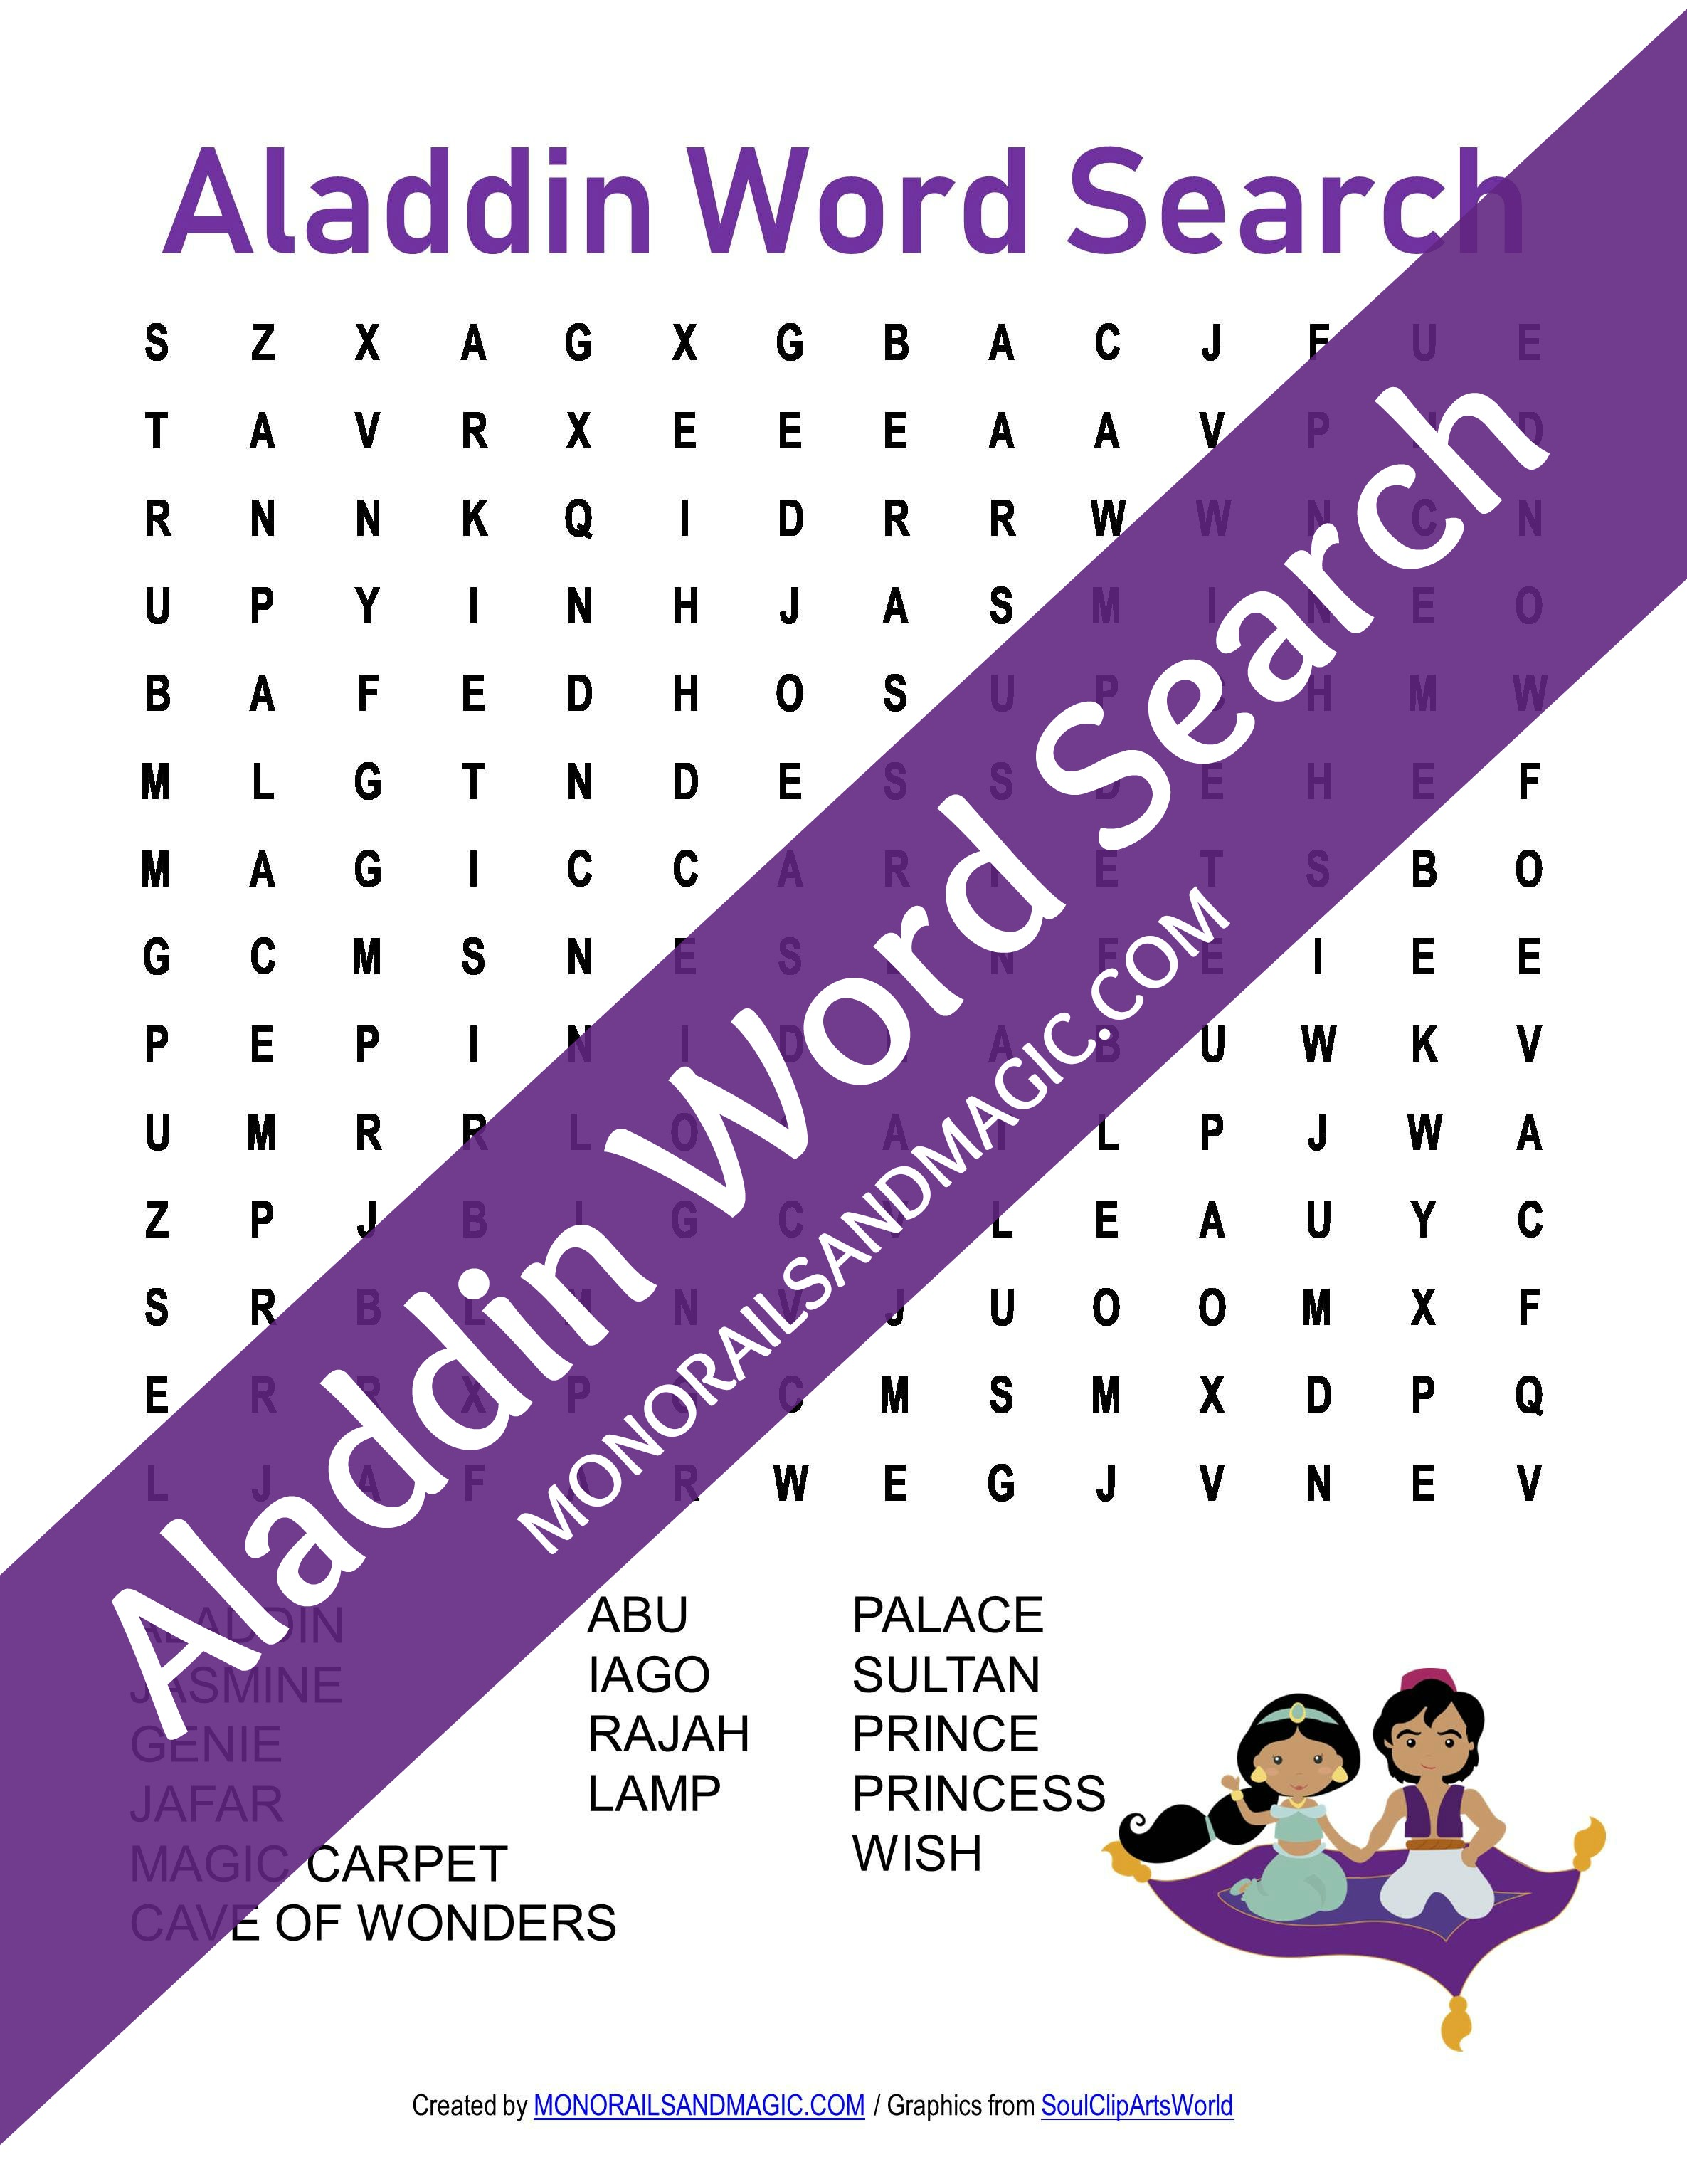 Aladdin Word Search Free Printable